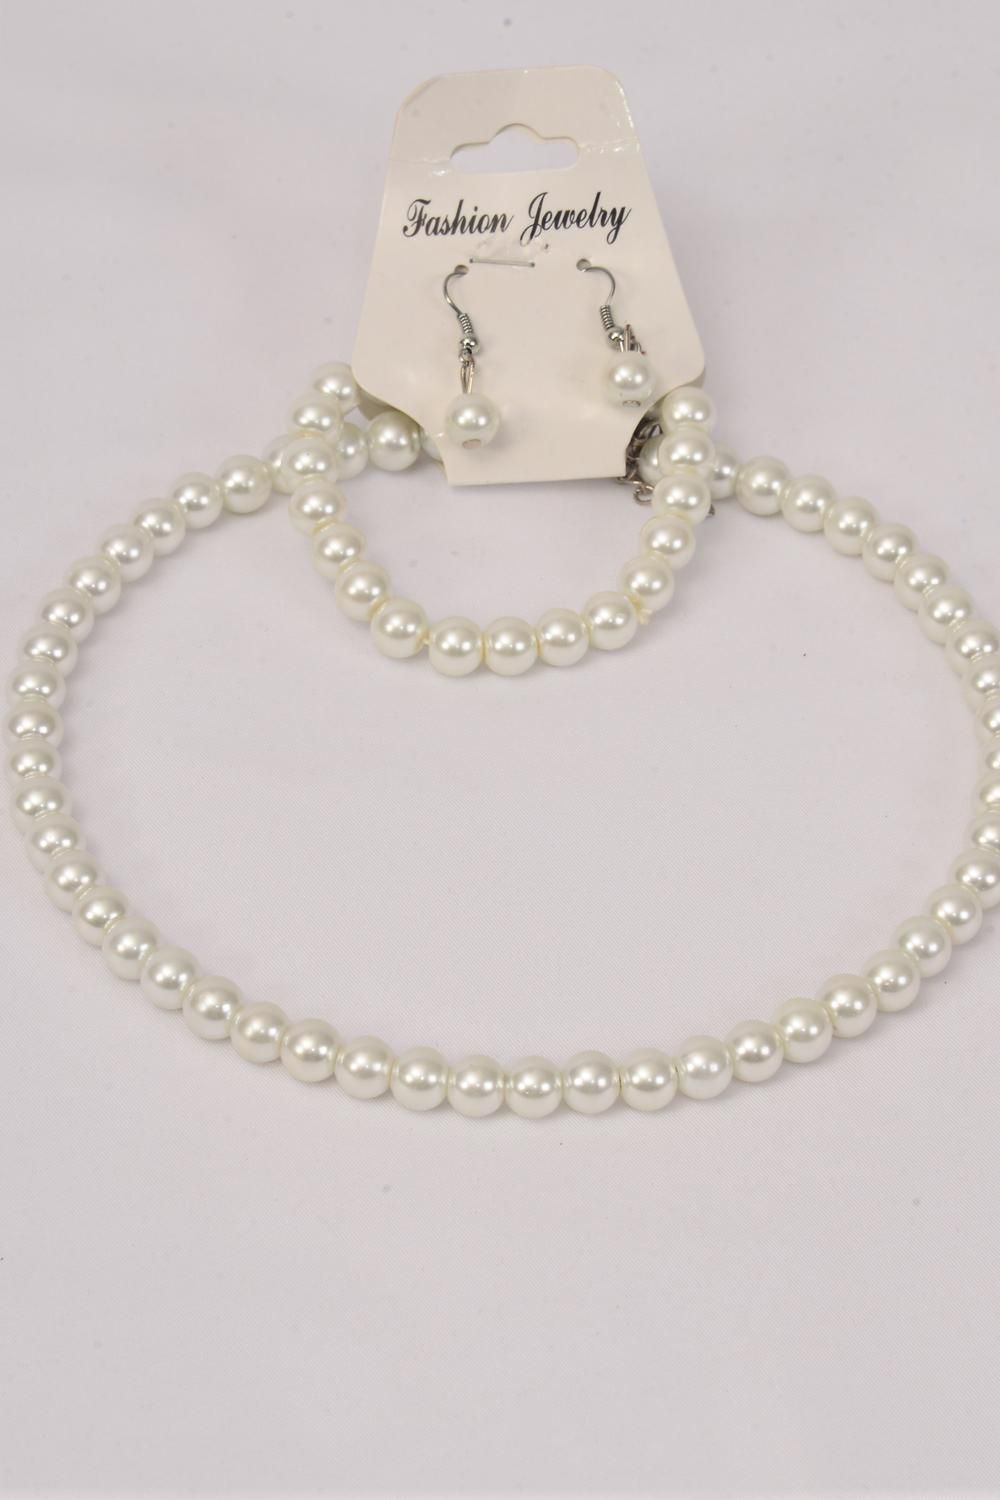 Necklace Sets Choker 16 inch 10 mm White Glass Pearl Flexible Bracelet/DZ **White** Bracelet is Stretch,Hang Tag & Opp Bag & UPC Code